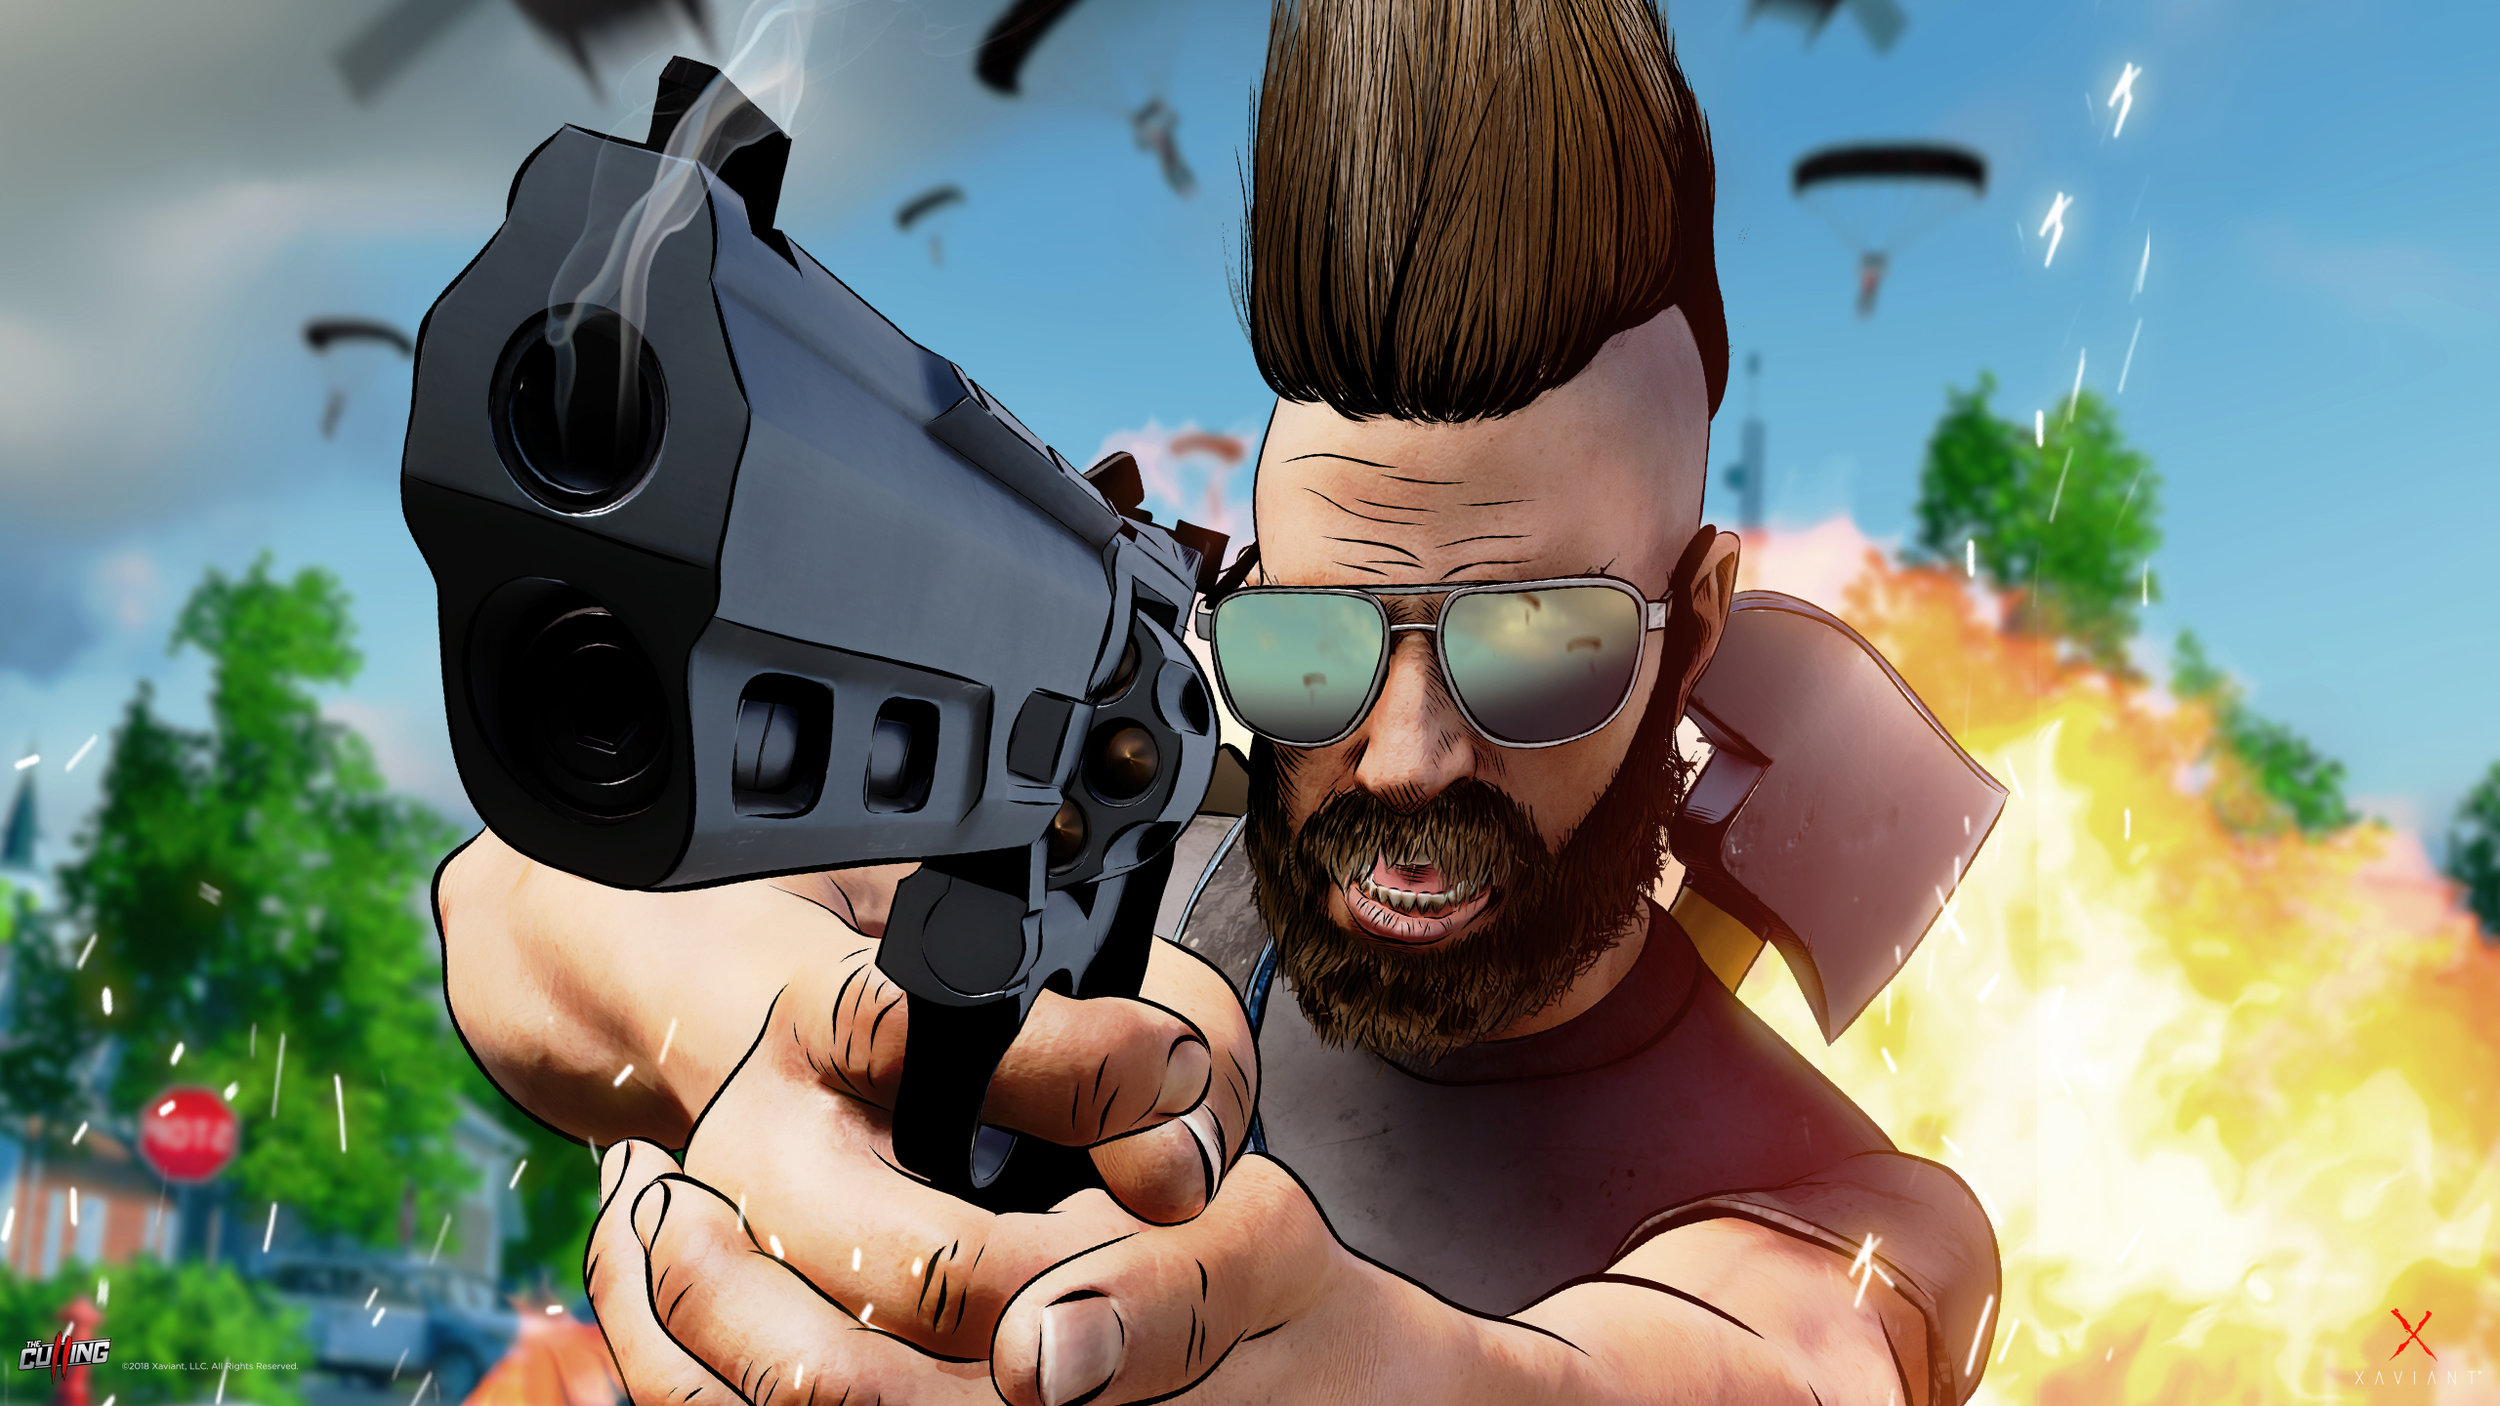 Following the Disastrous Launch of The Culling 2, the Future of